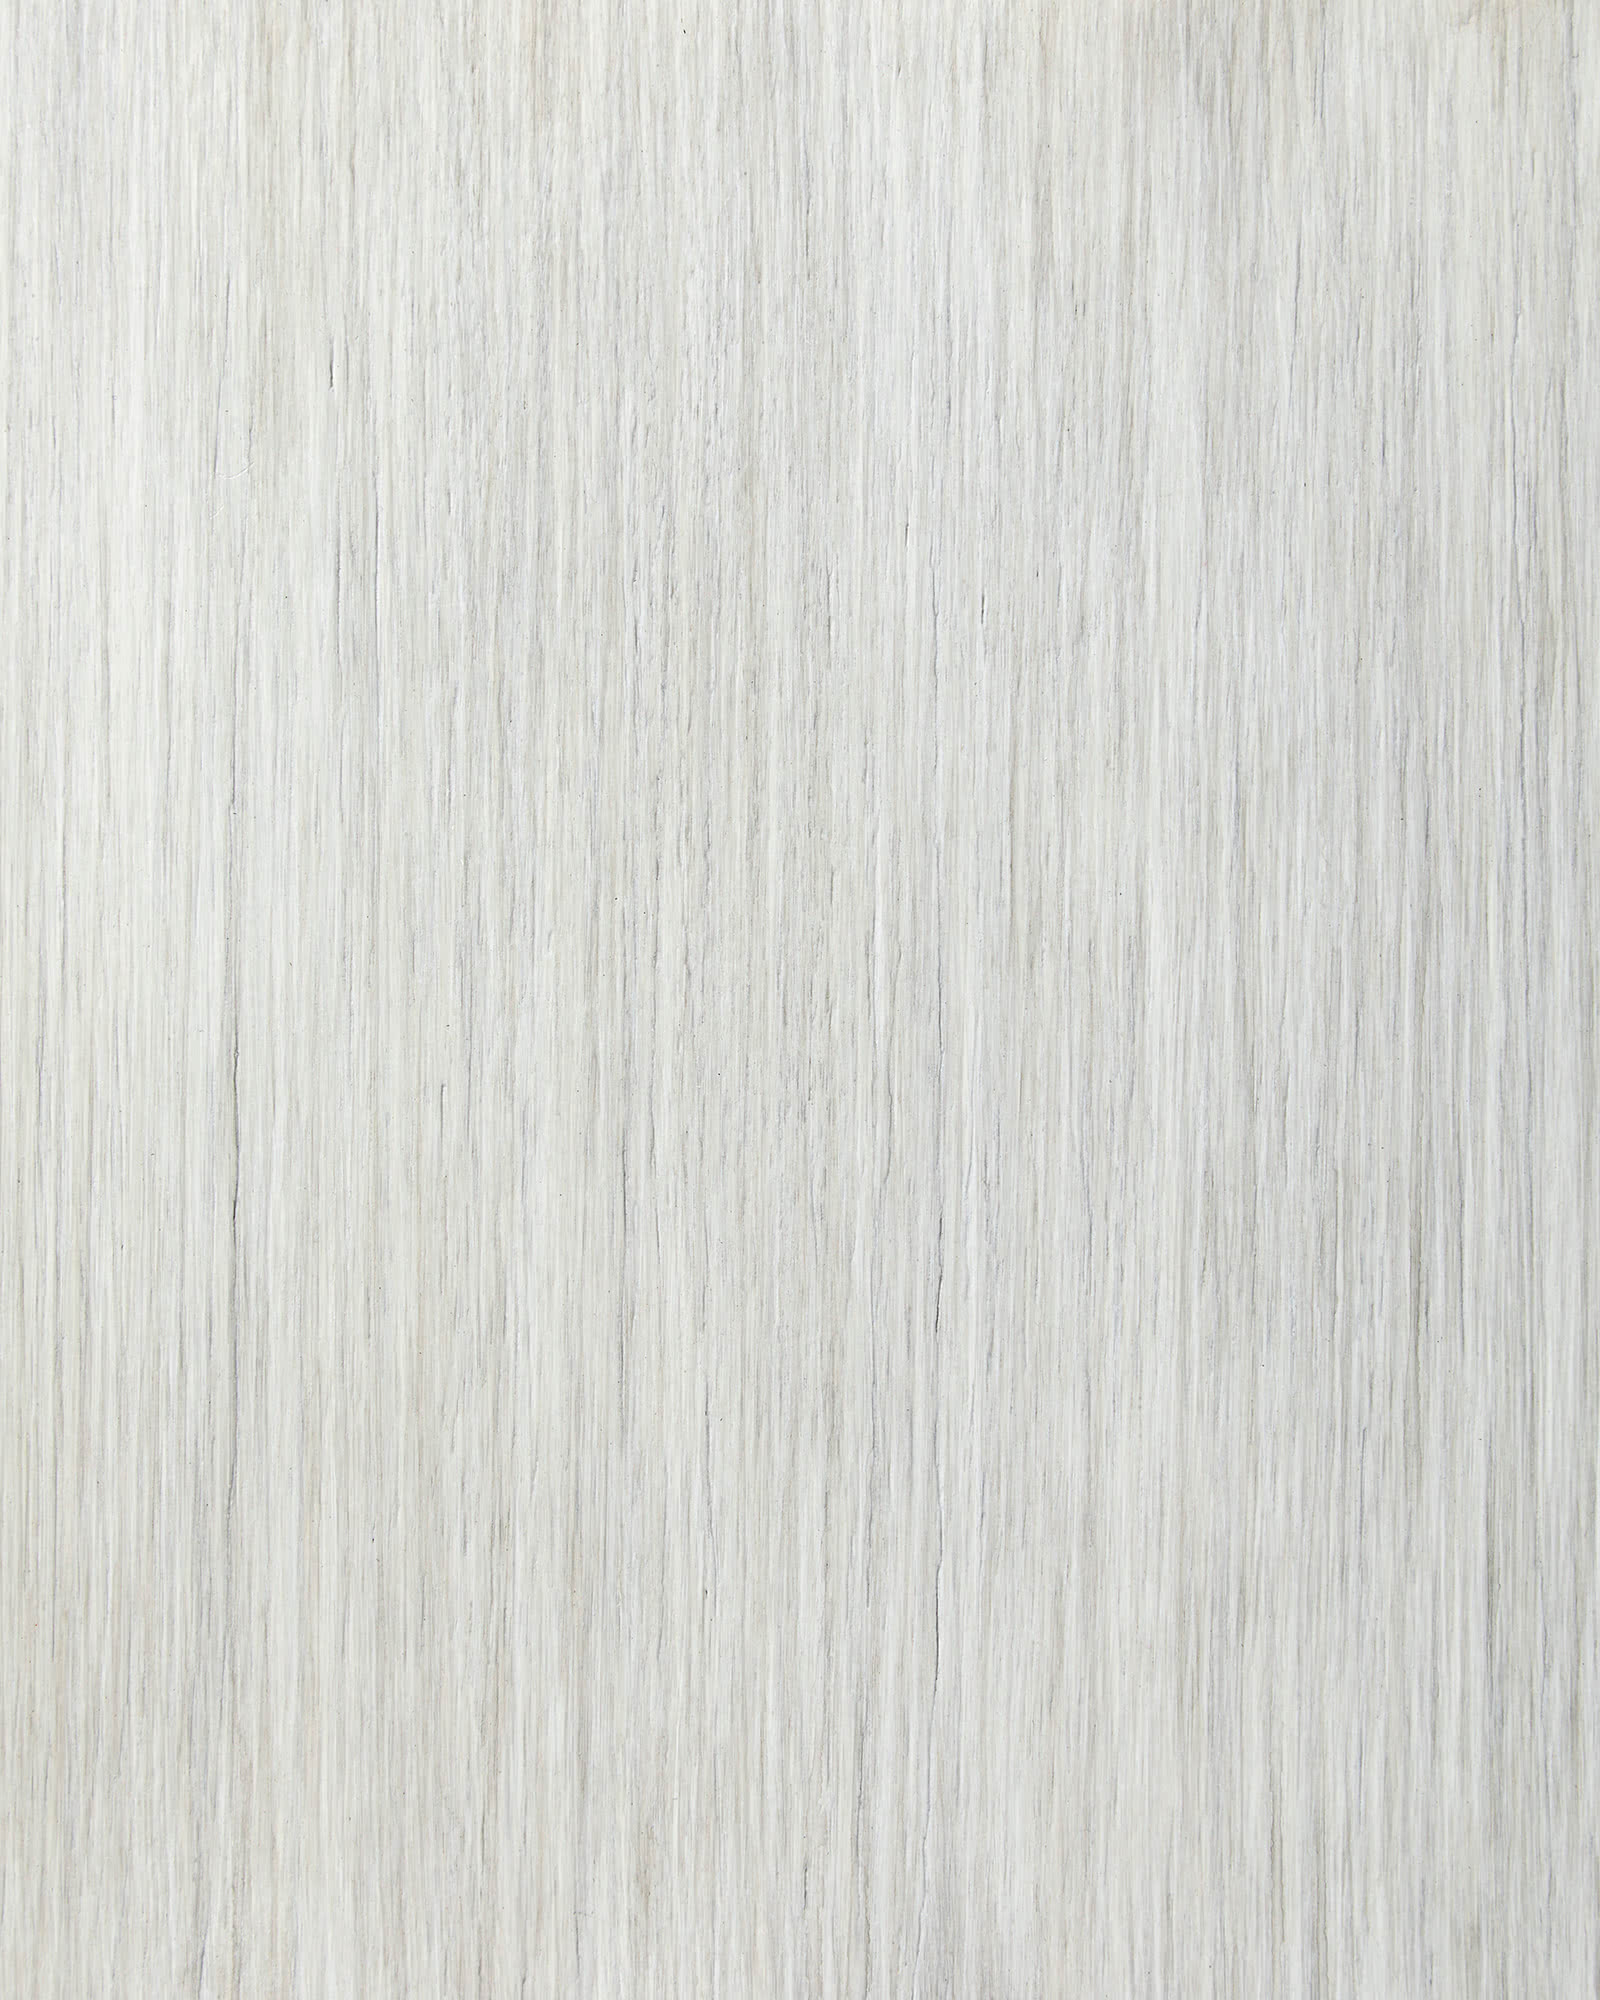 Downing Furniture Swatch, Salt Spray